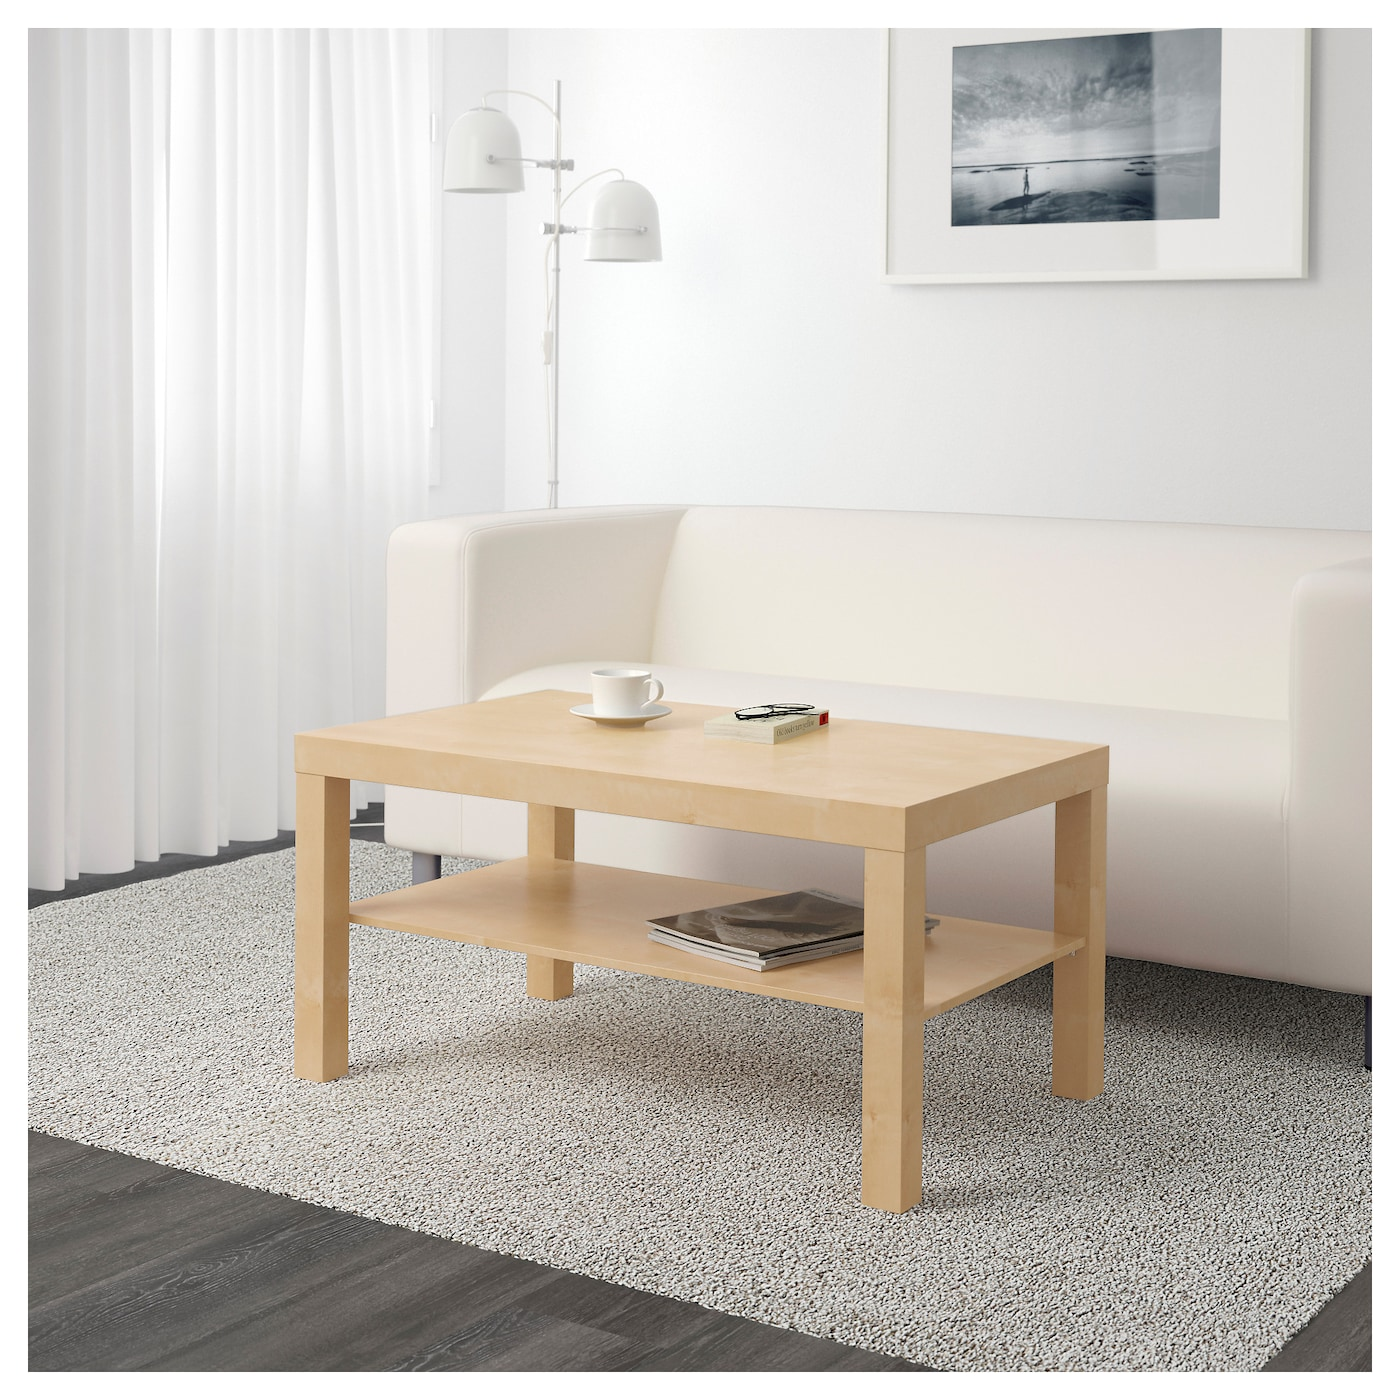 Lack coffee table birch effect 90x55 cm ikea - Ikea table basse lack ...